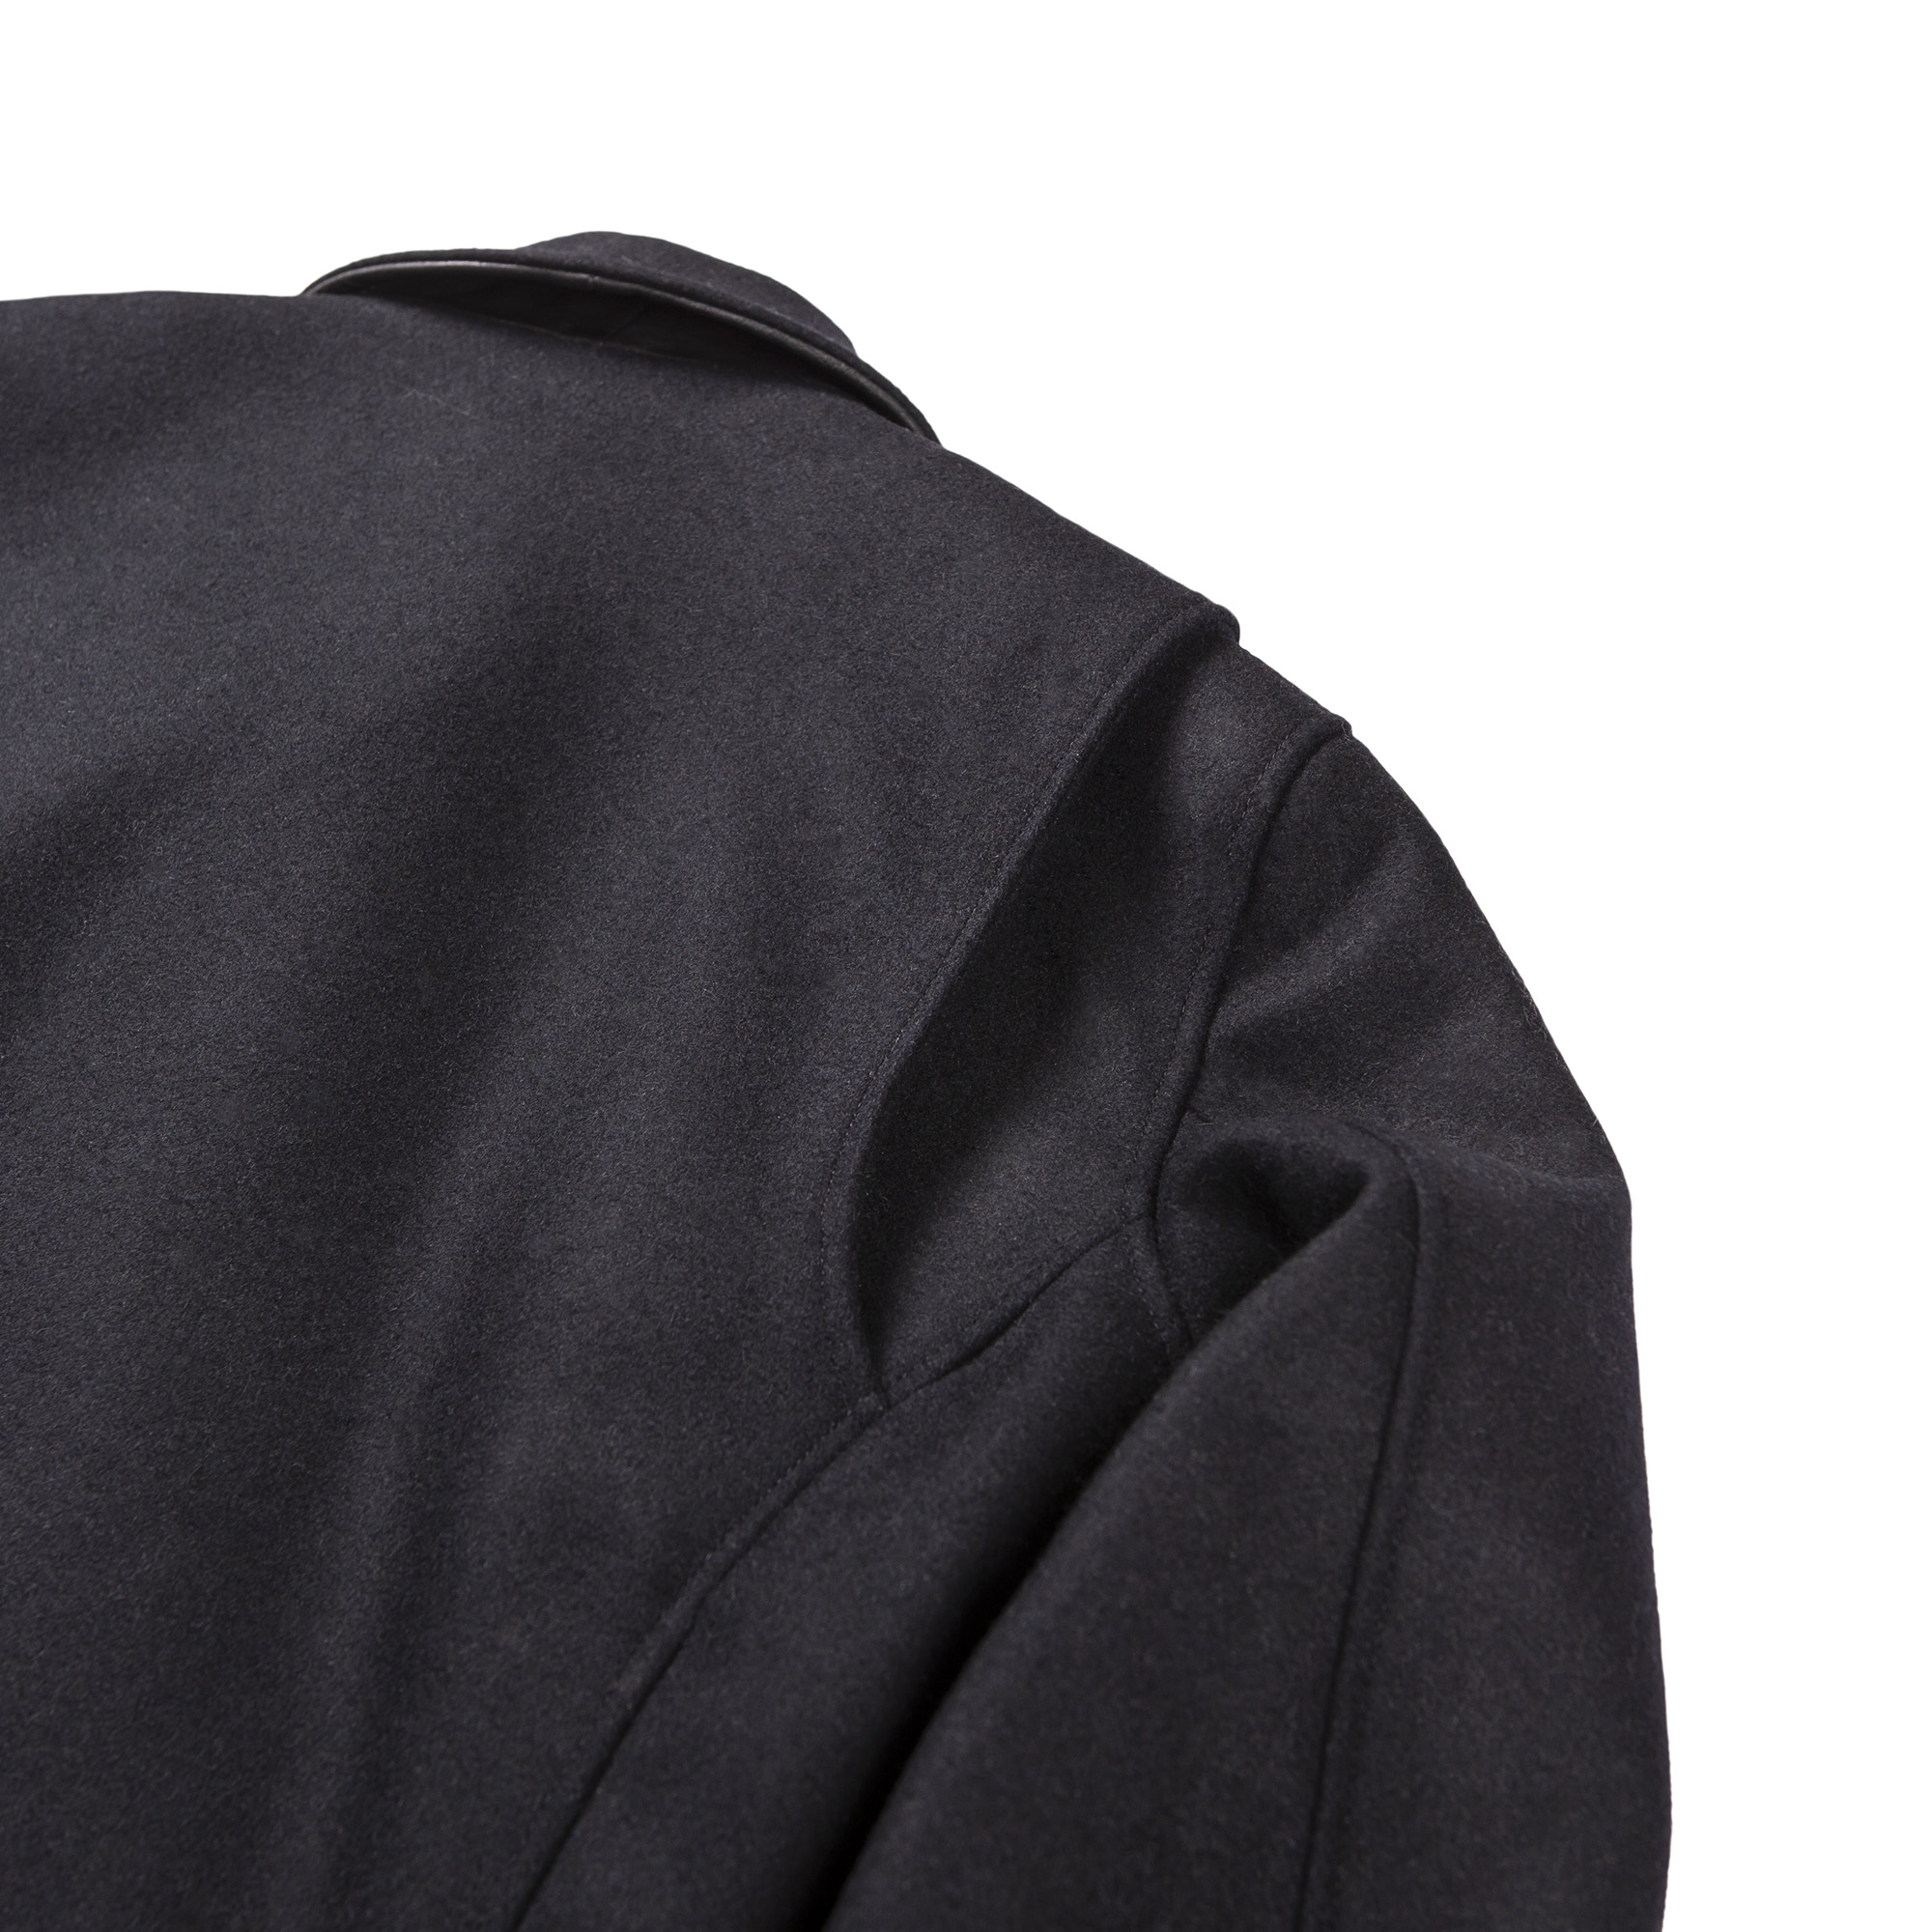 shangri-la-heritage-varenne-navy-blue-wool-jacket-still-life-back-detail